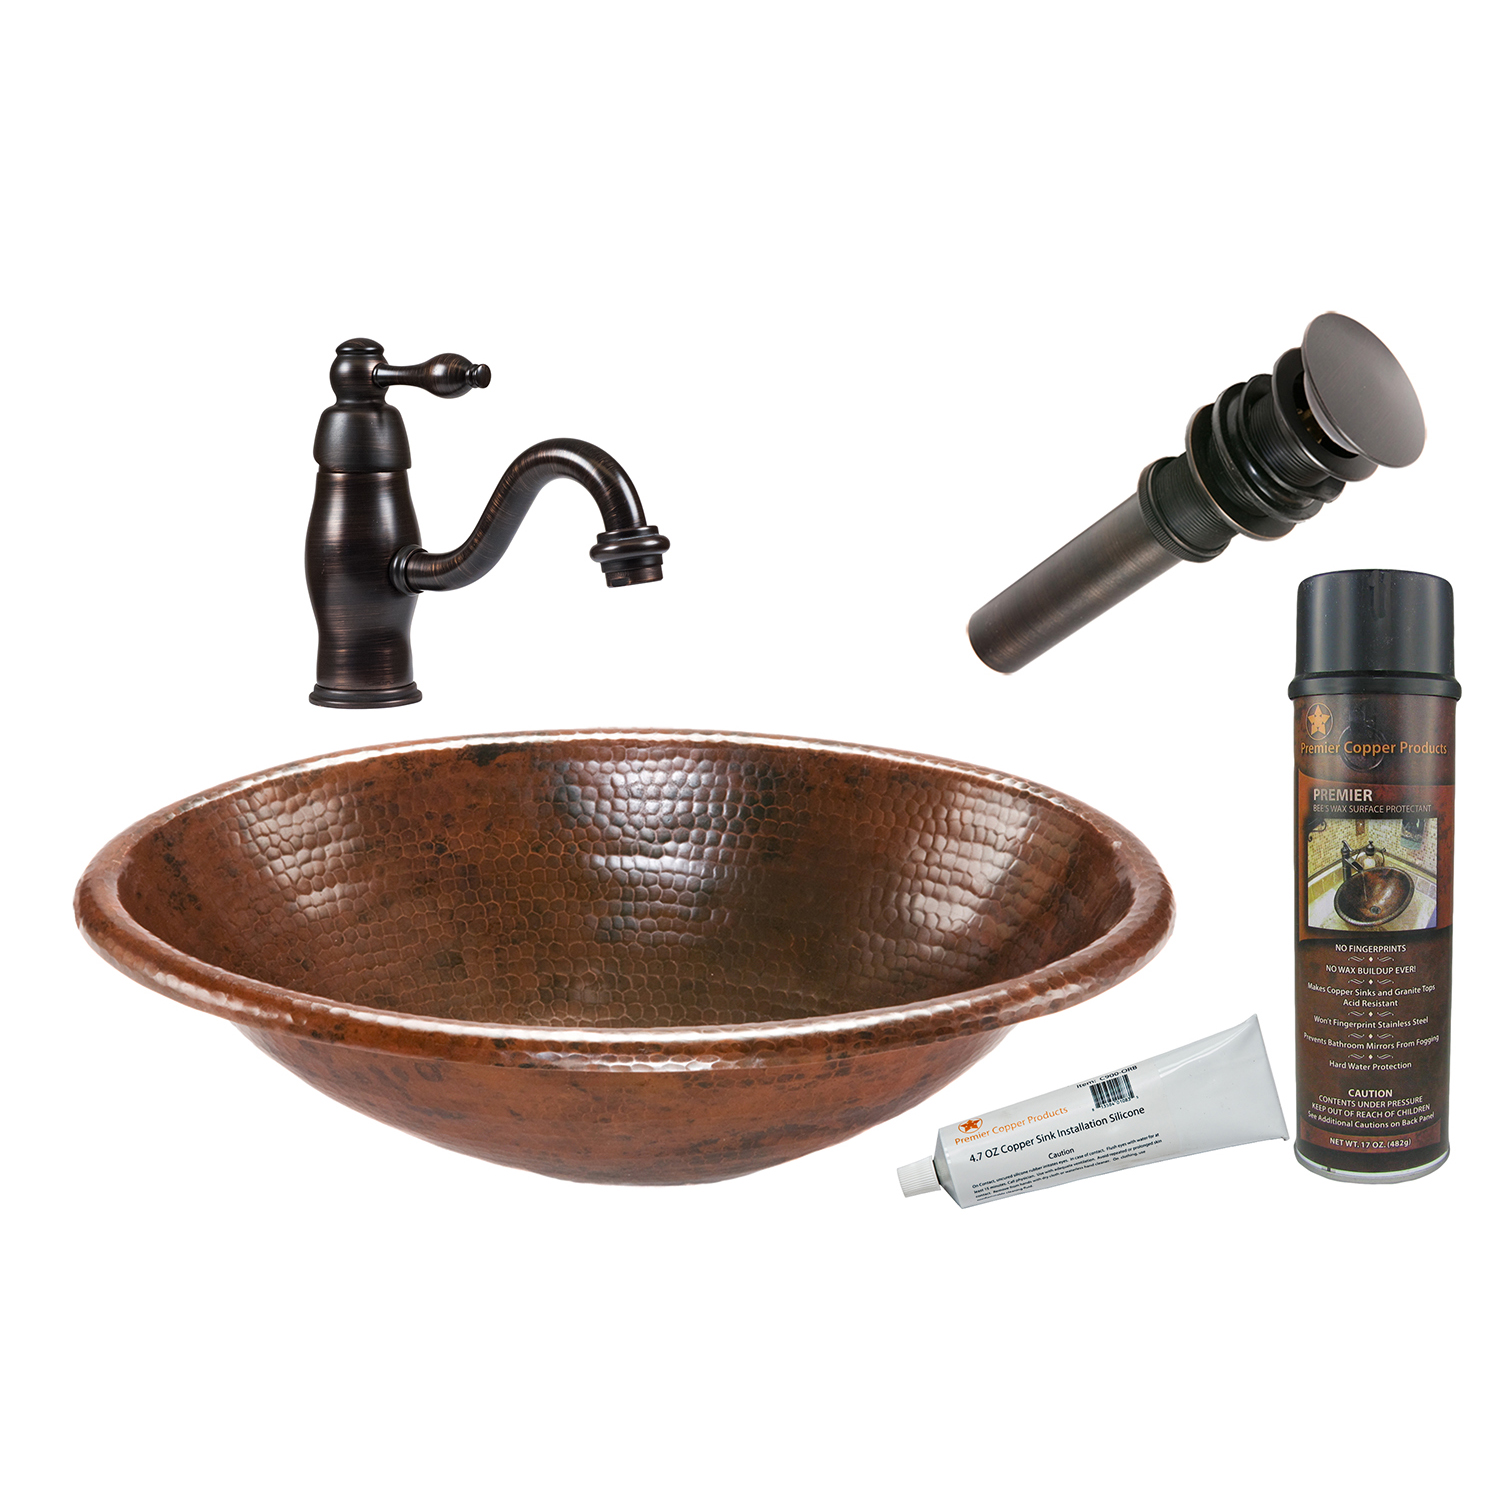 Oval Self Rimming Hammered Copper Sink, Faucet and Accessories Package, Oil Rubbed Bronze